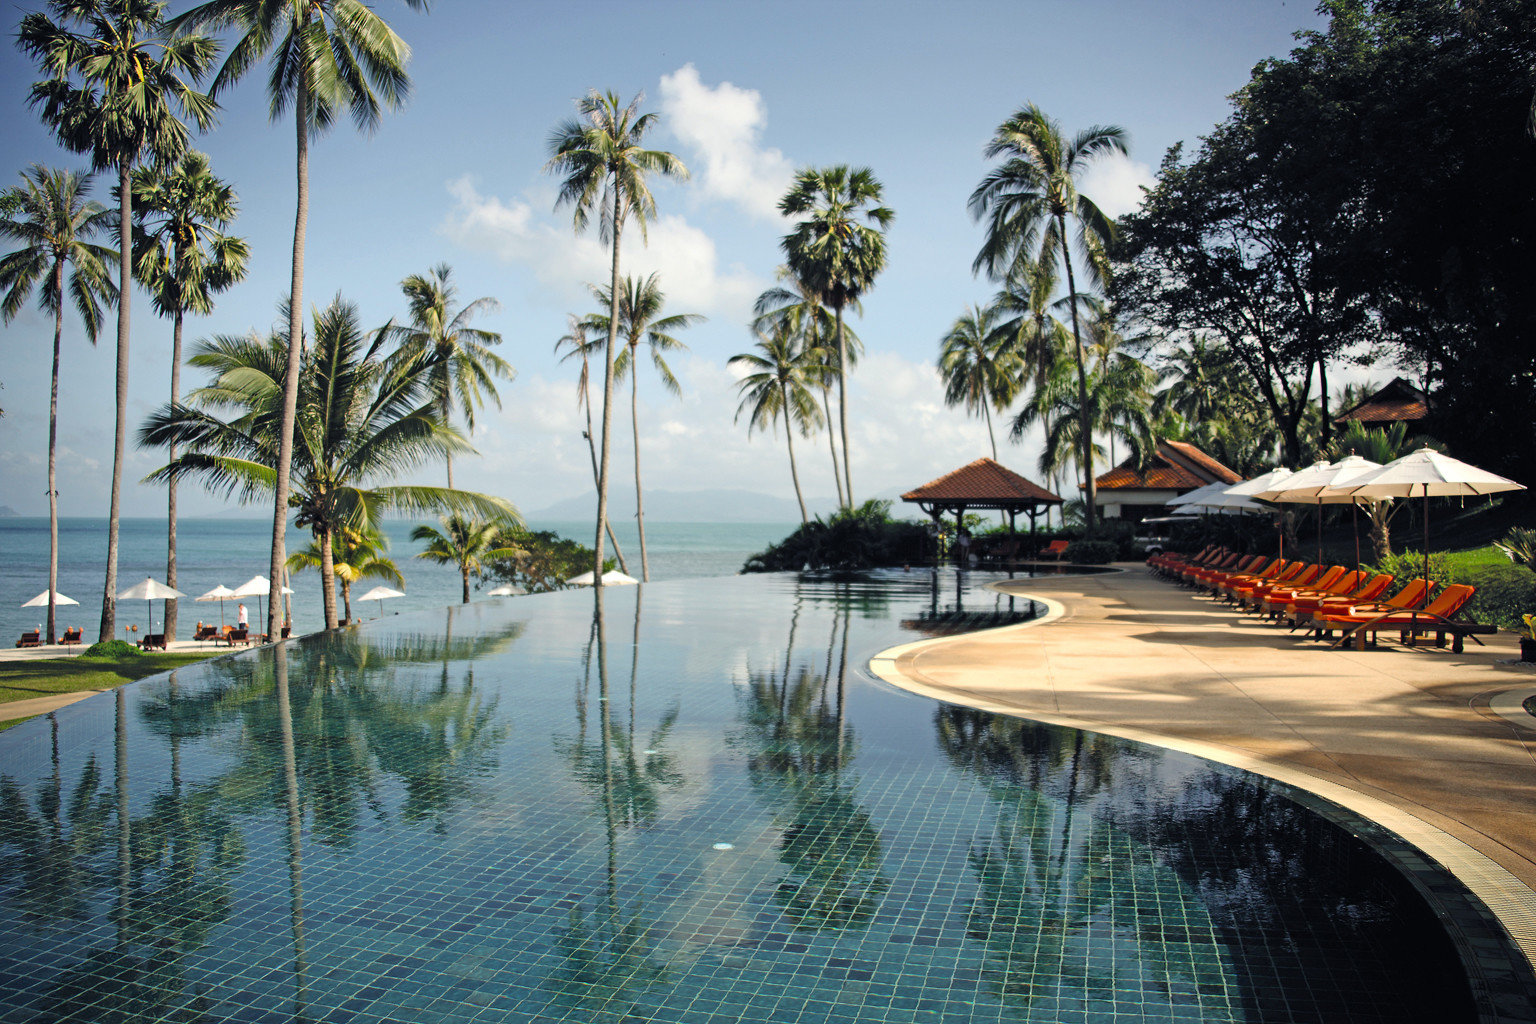 Beach Beachfront Ocean Pool tree water palm sky leisure swimming pool Resort arecales tropics Sea palm family Lagoon plant shore lined surrounded